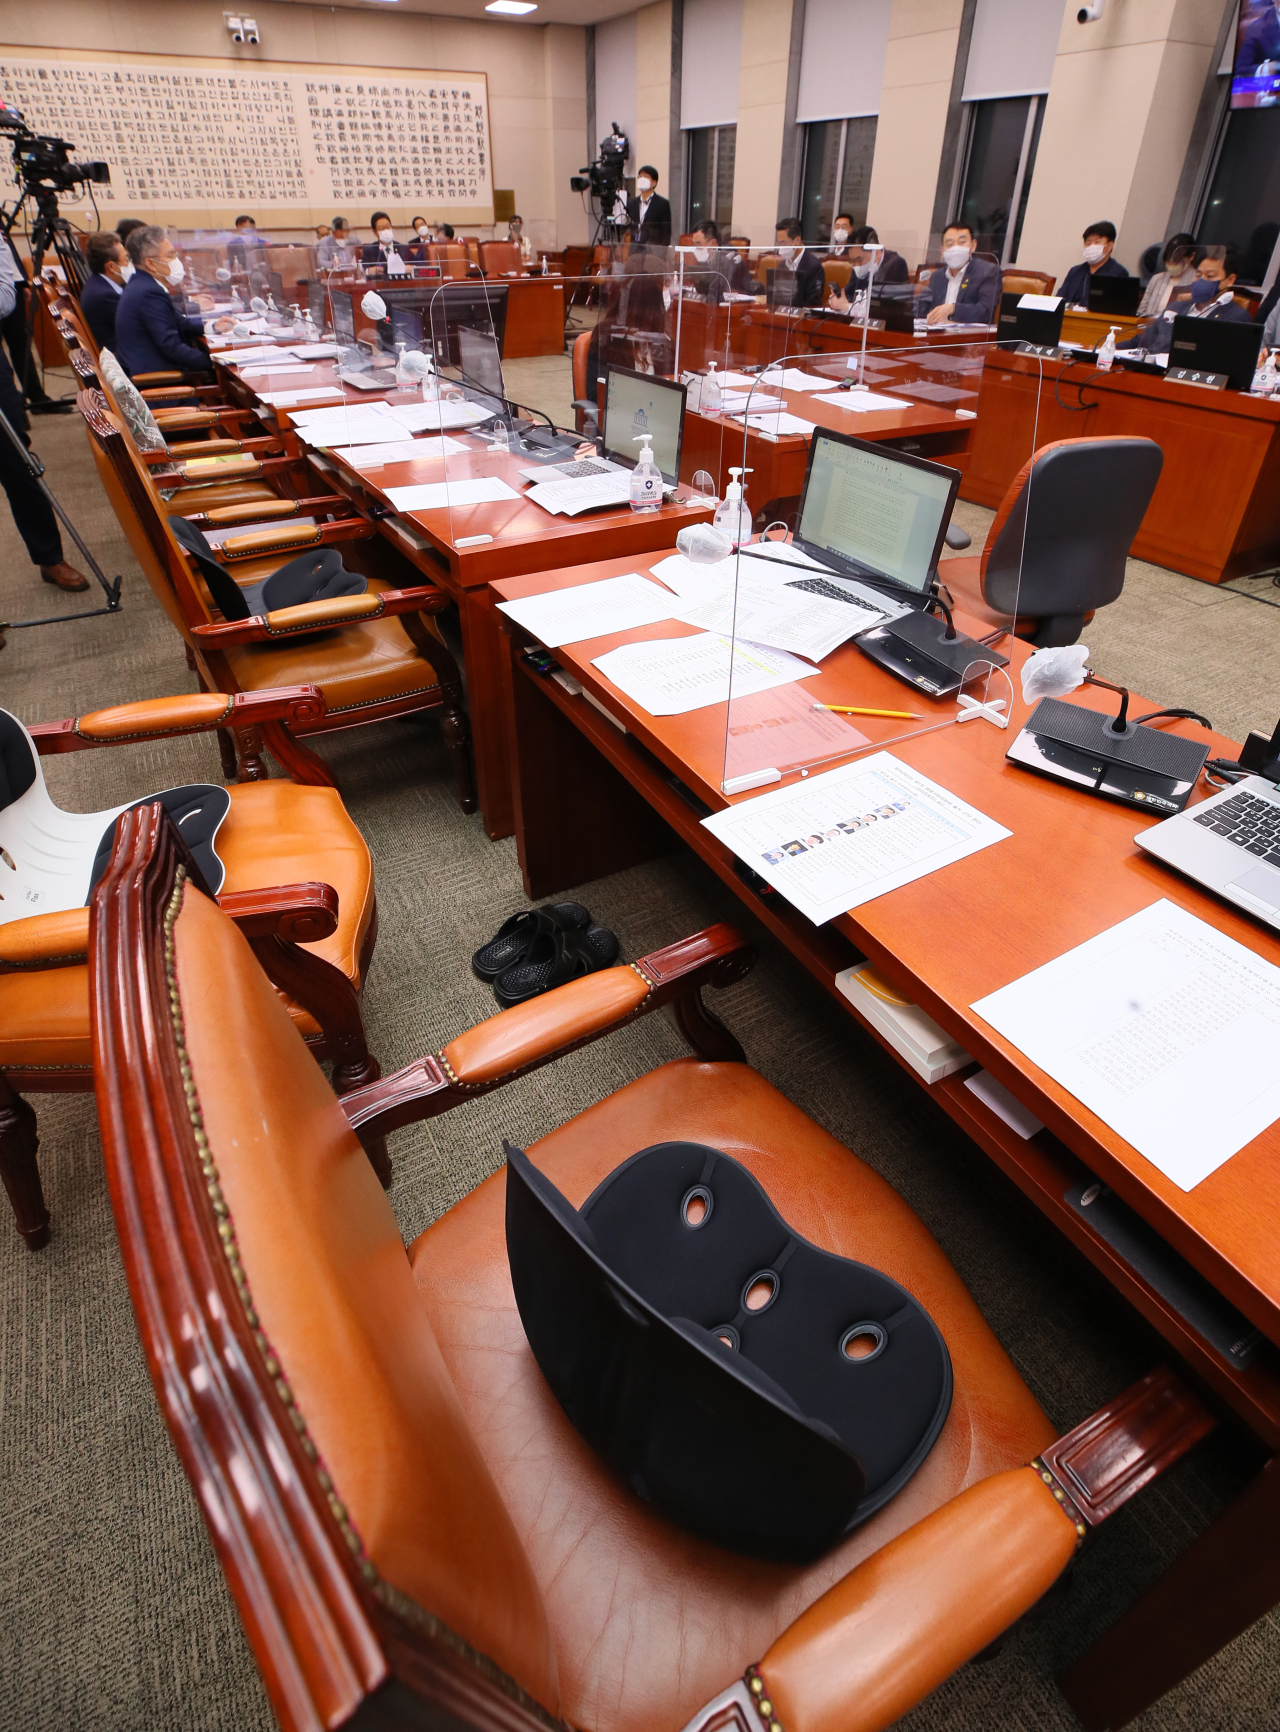 Ruling party members of the Parliamentary Committee on Legislation and Judiciary review a proposed revision to the law on press arbitration and remedies at the National Assembly in Seoul on Wednesday, while seats vacated by protesting opposition party members remain empty. (Yonhap)